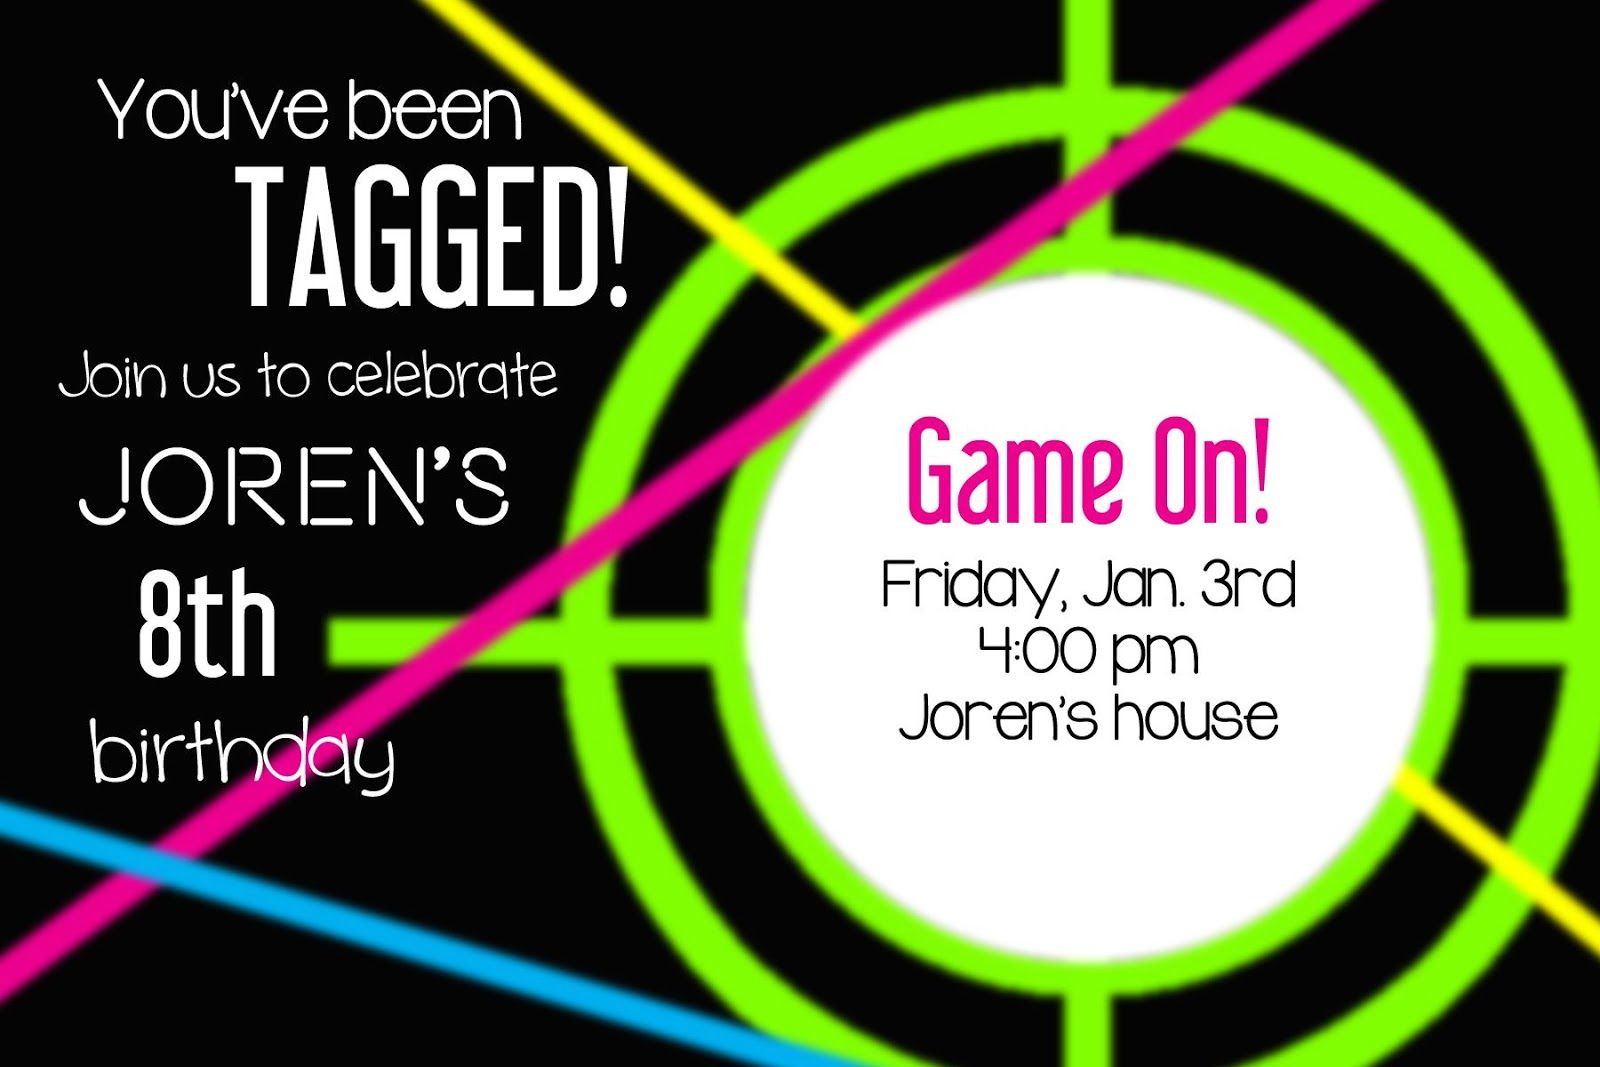 photograph relating to Laser Tag Invitations Free Printable known as Larcie Chicken: Neon Laser Tag Birthday Social gathering Laser Tag